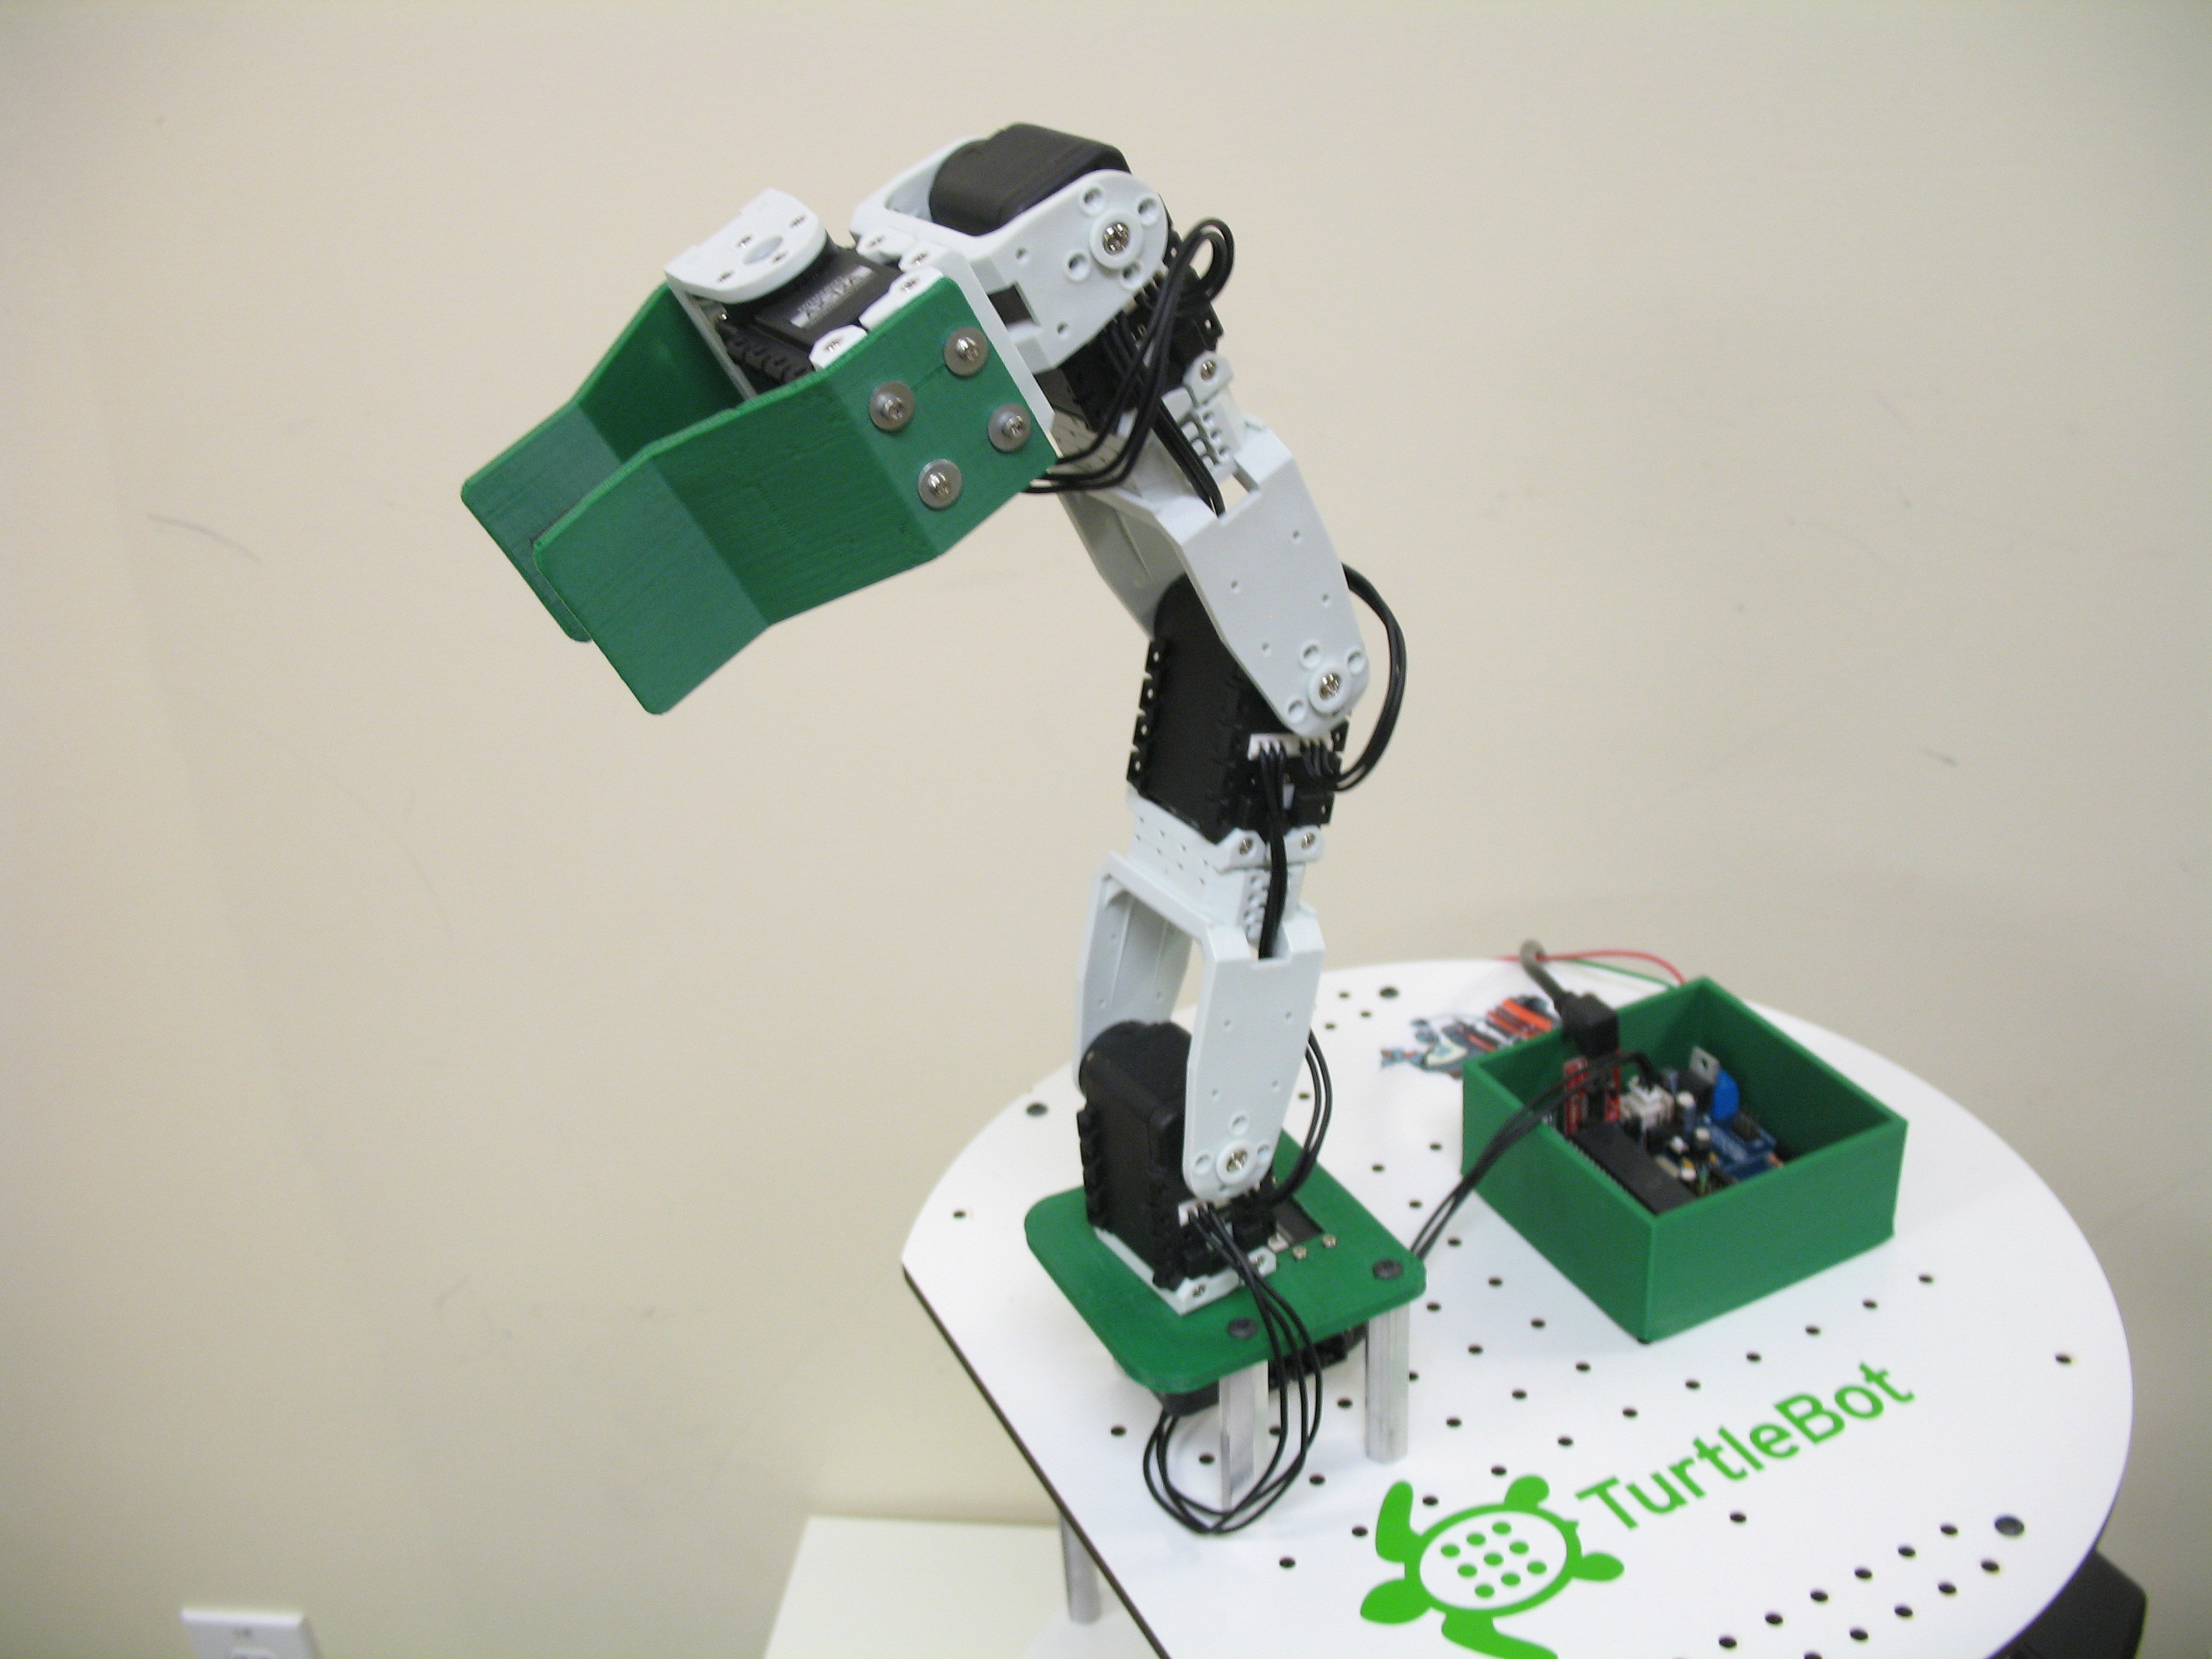 Wiring and Attaching an Arm to Your TurtleBot